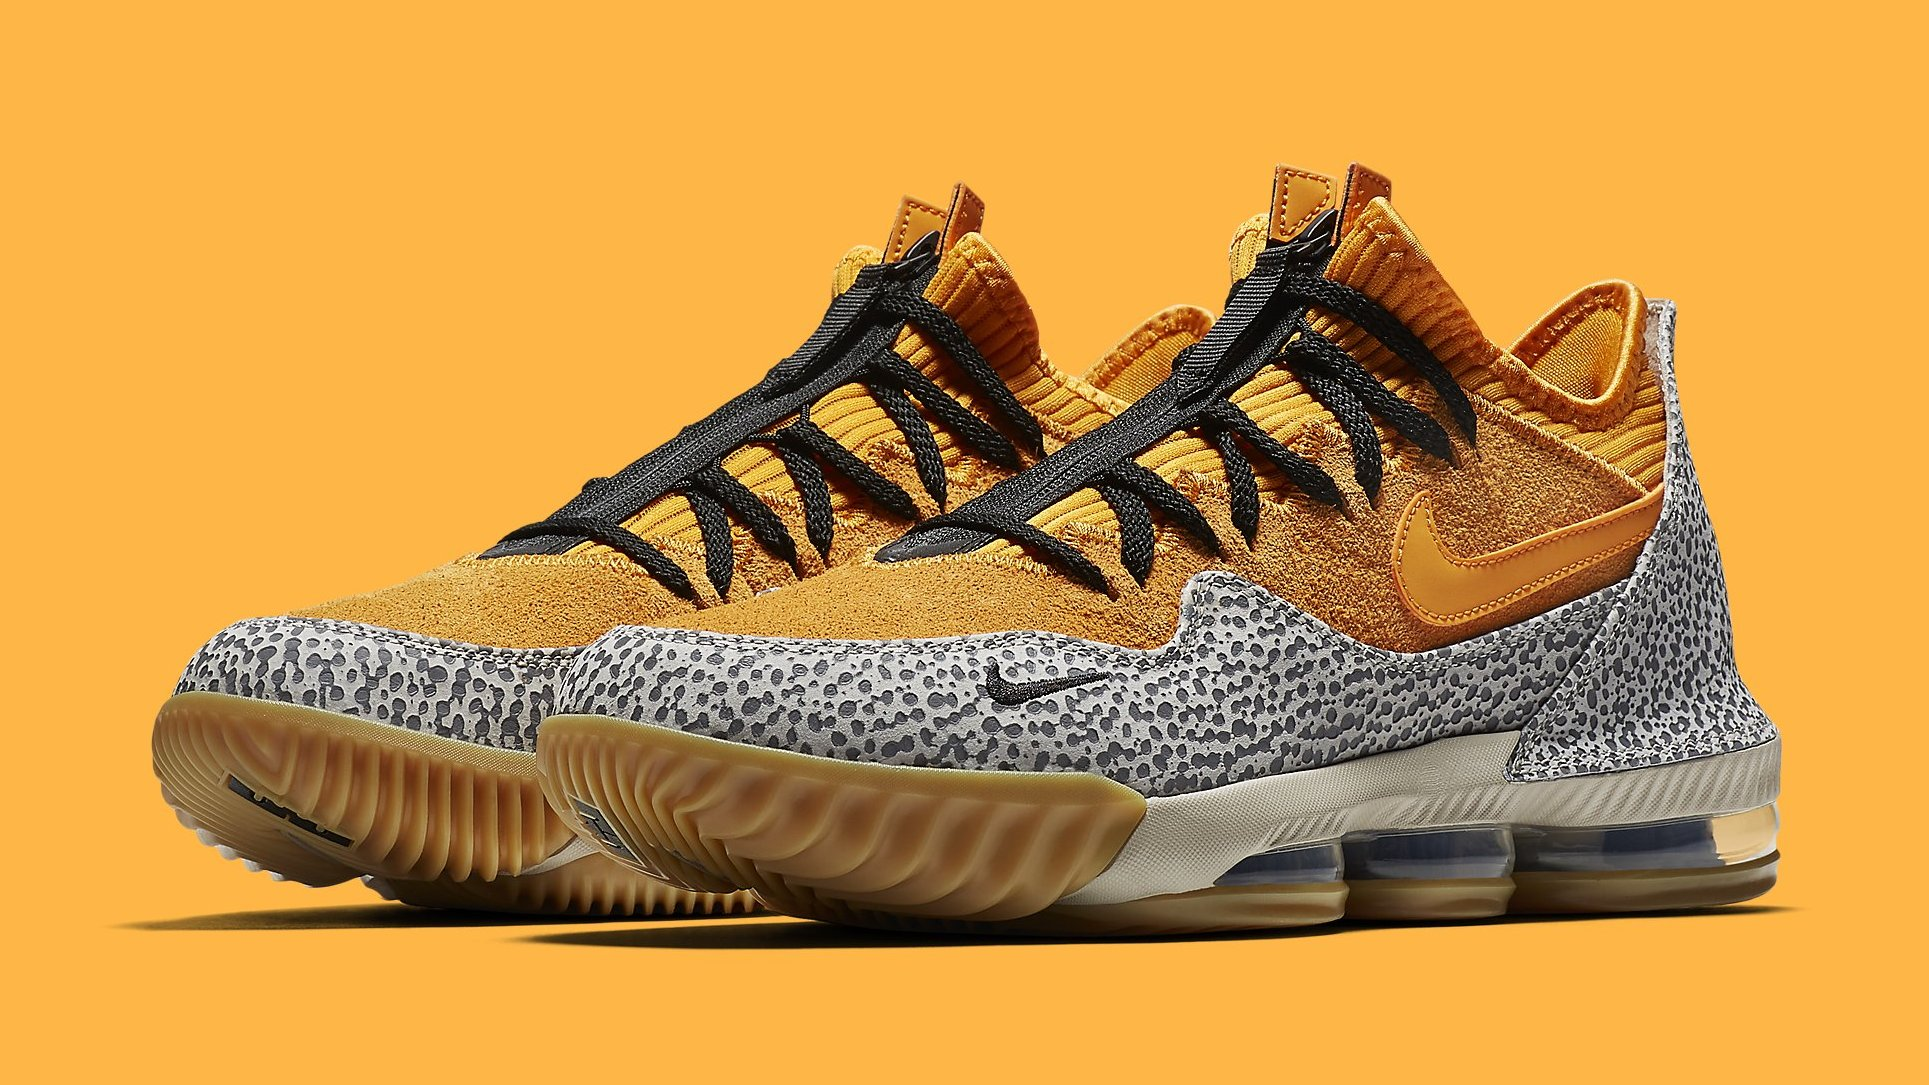 An Official Look at the 'Safari' Nike LeBron 16 Low